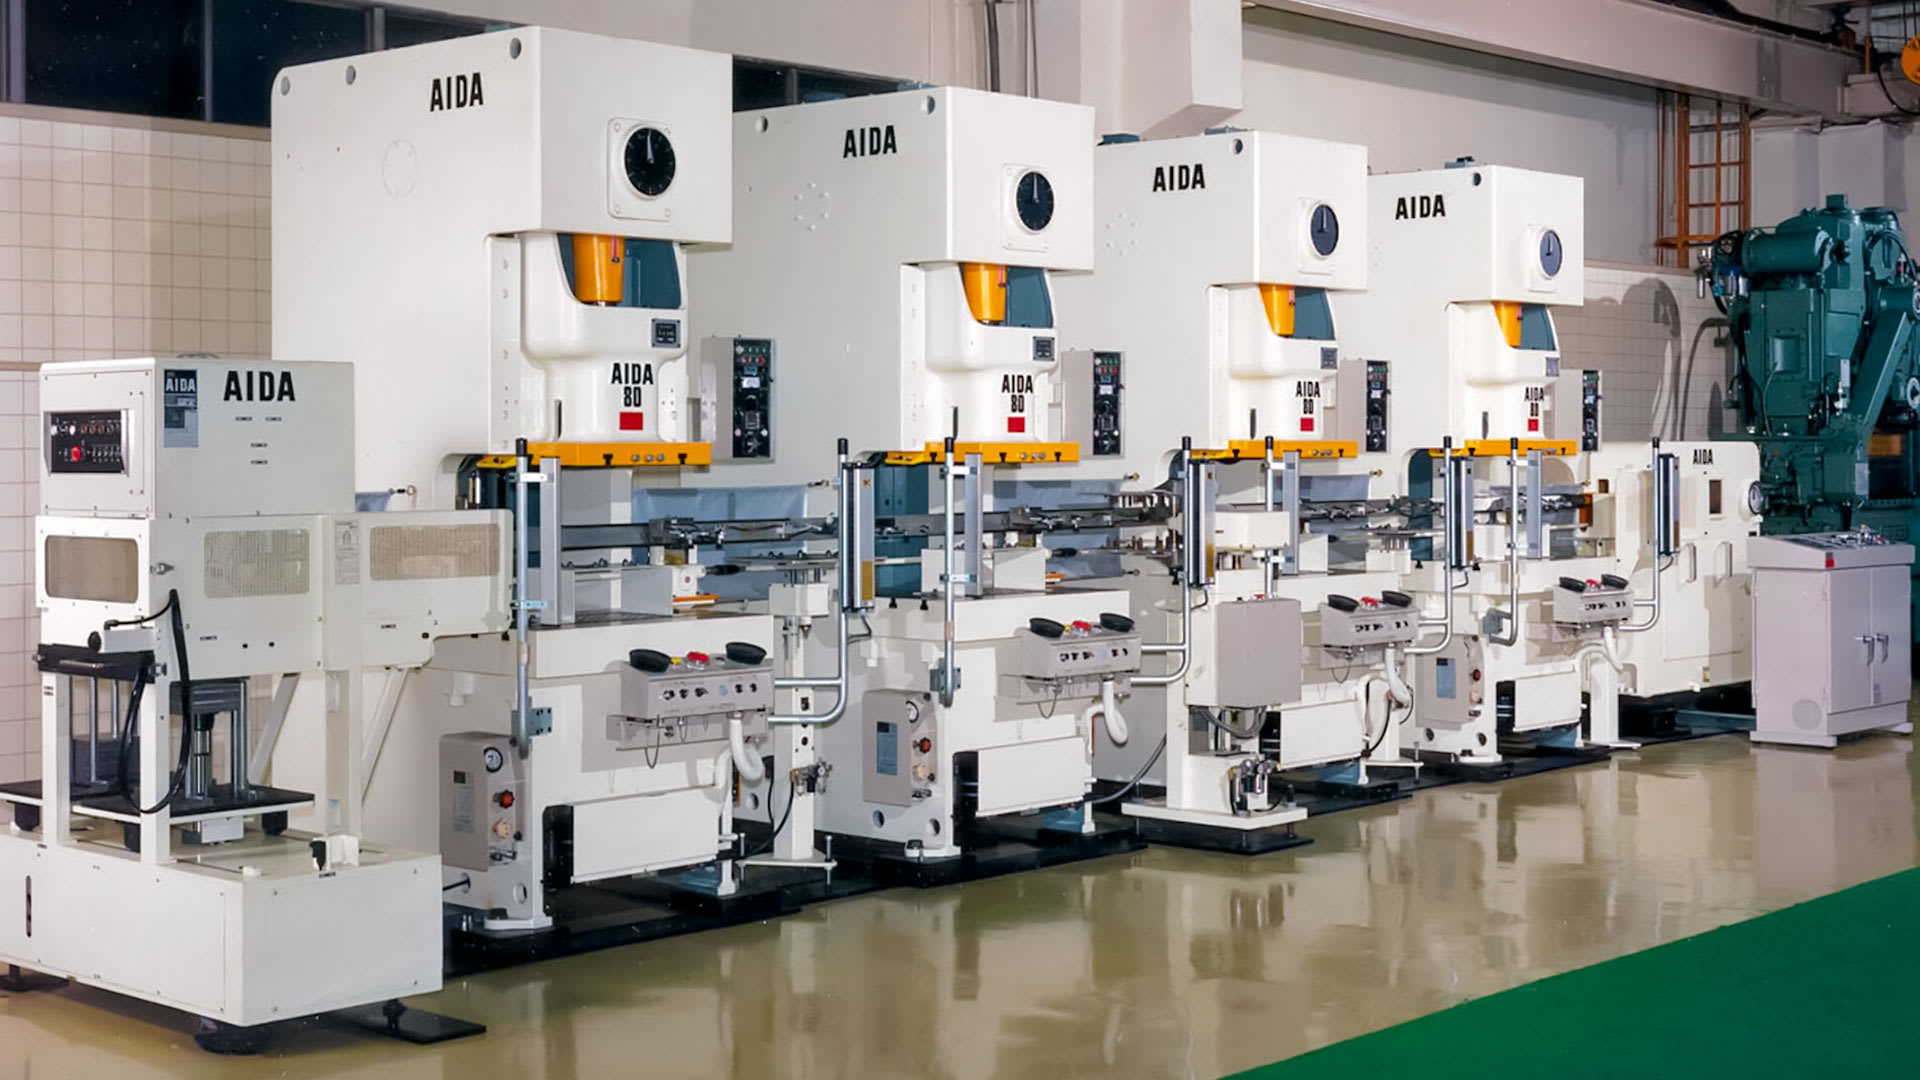 AIDA Gap Frame Stamping Press Tandem Line with Metalforming Automation System